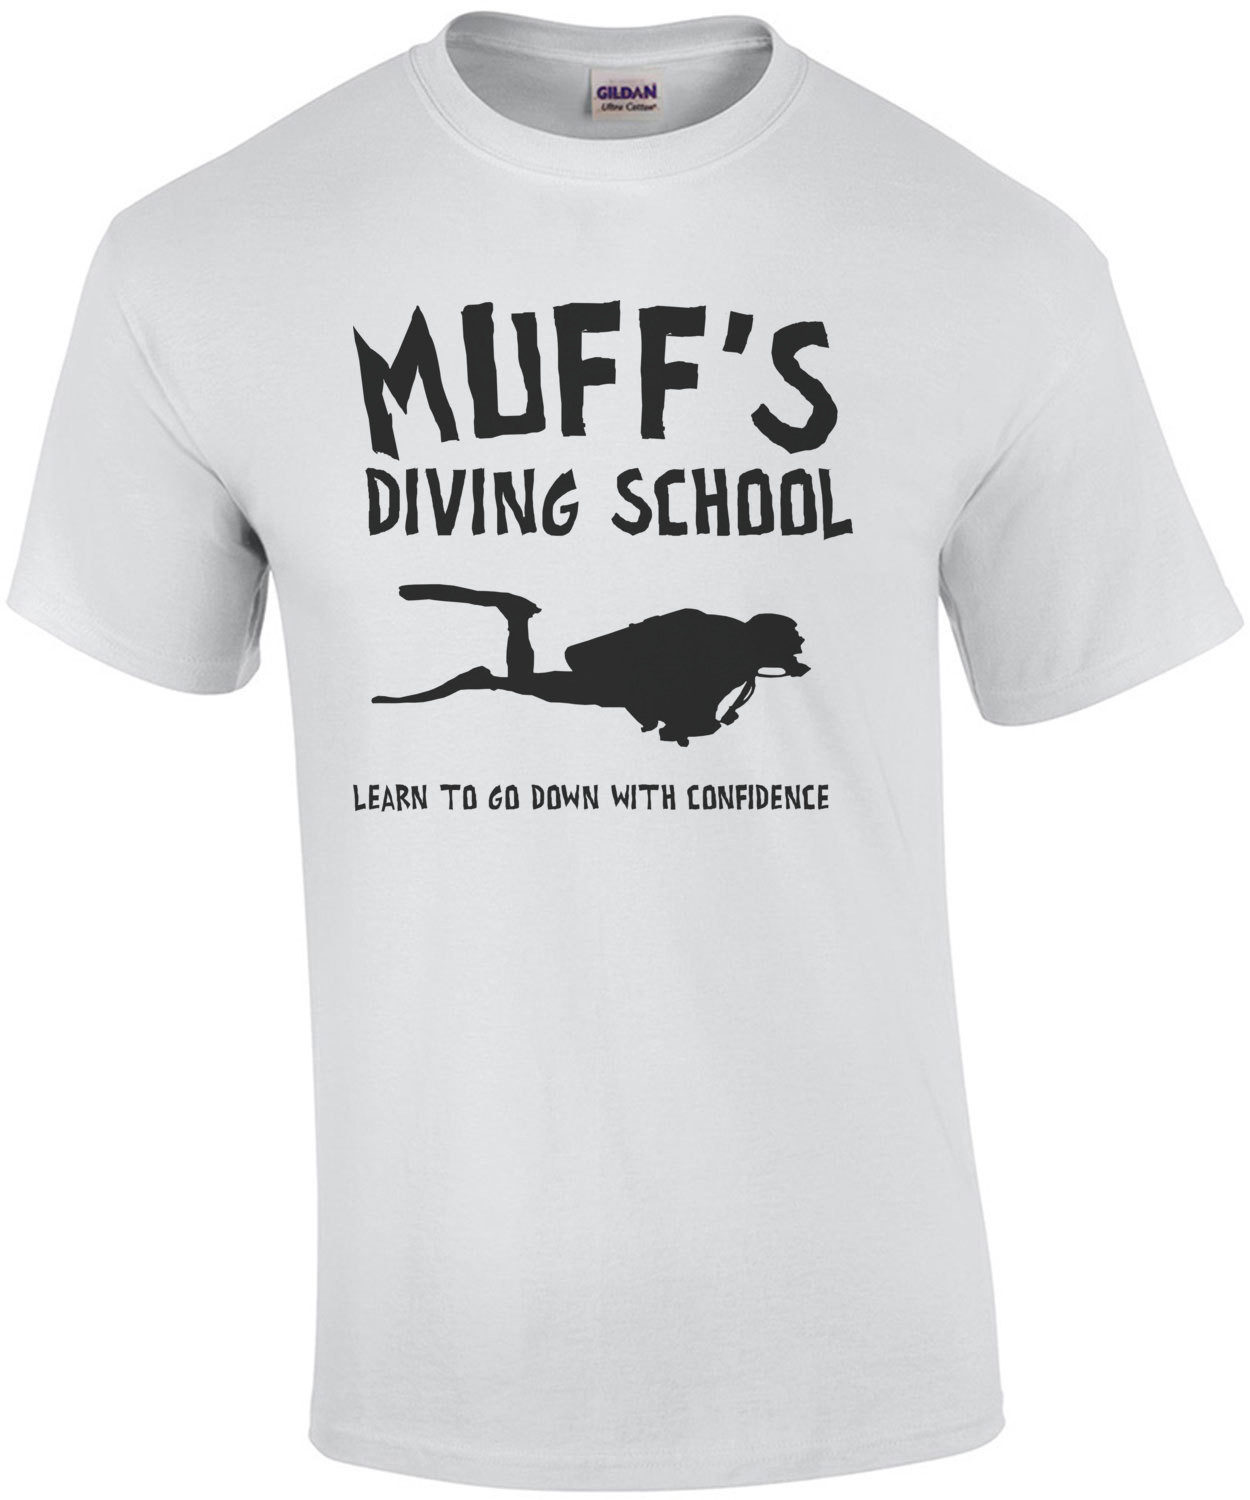 Muffs Diving School Learn To Go Down With Confidence T-Shirt